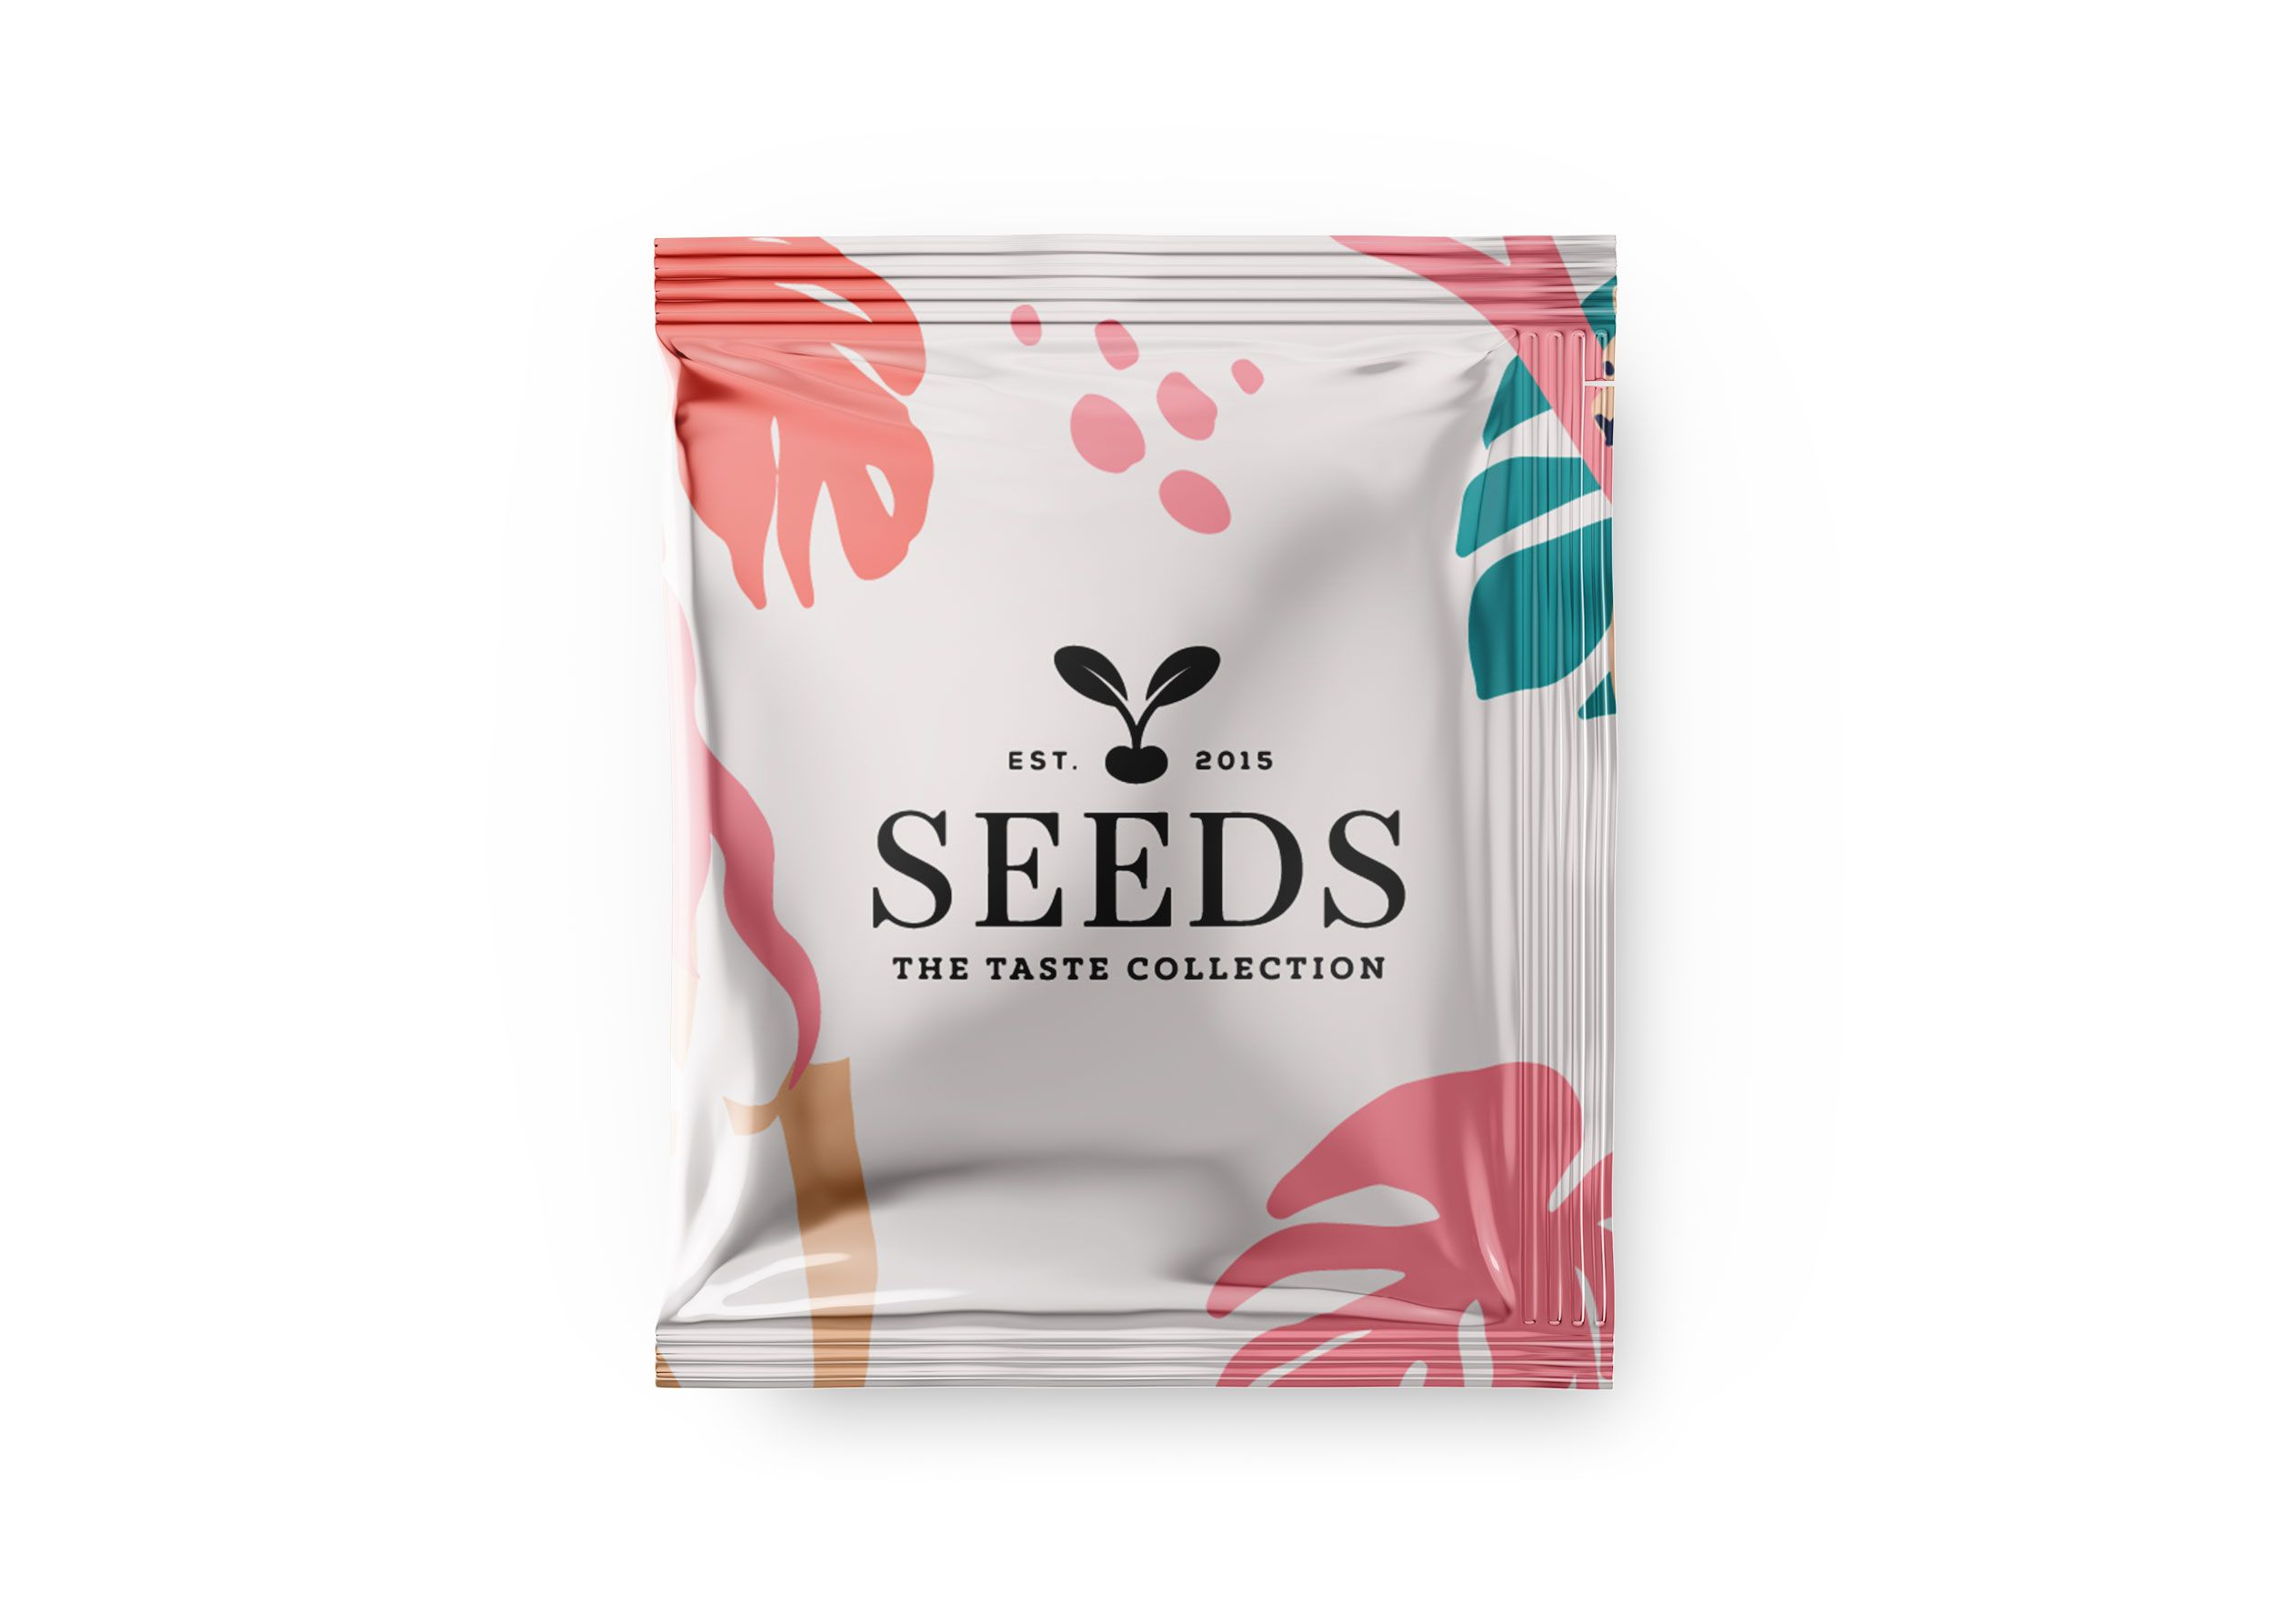 Download 40 Pouch Mockup Collection Free Psd Mockup New Mockup Mockup Free Psd Free Logo Mockup Mockup Psd